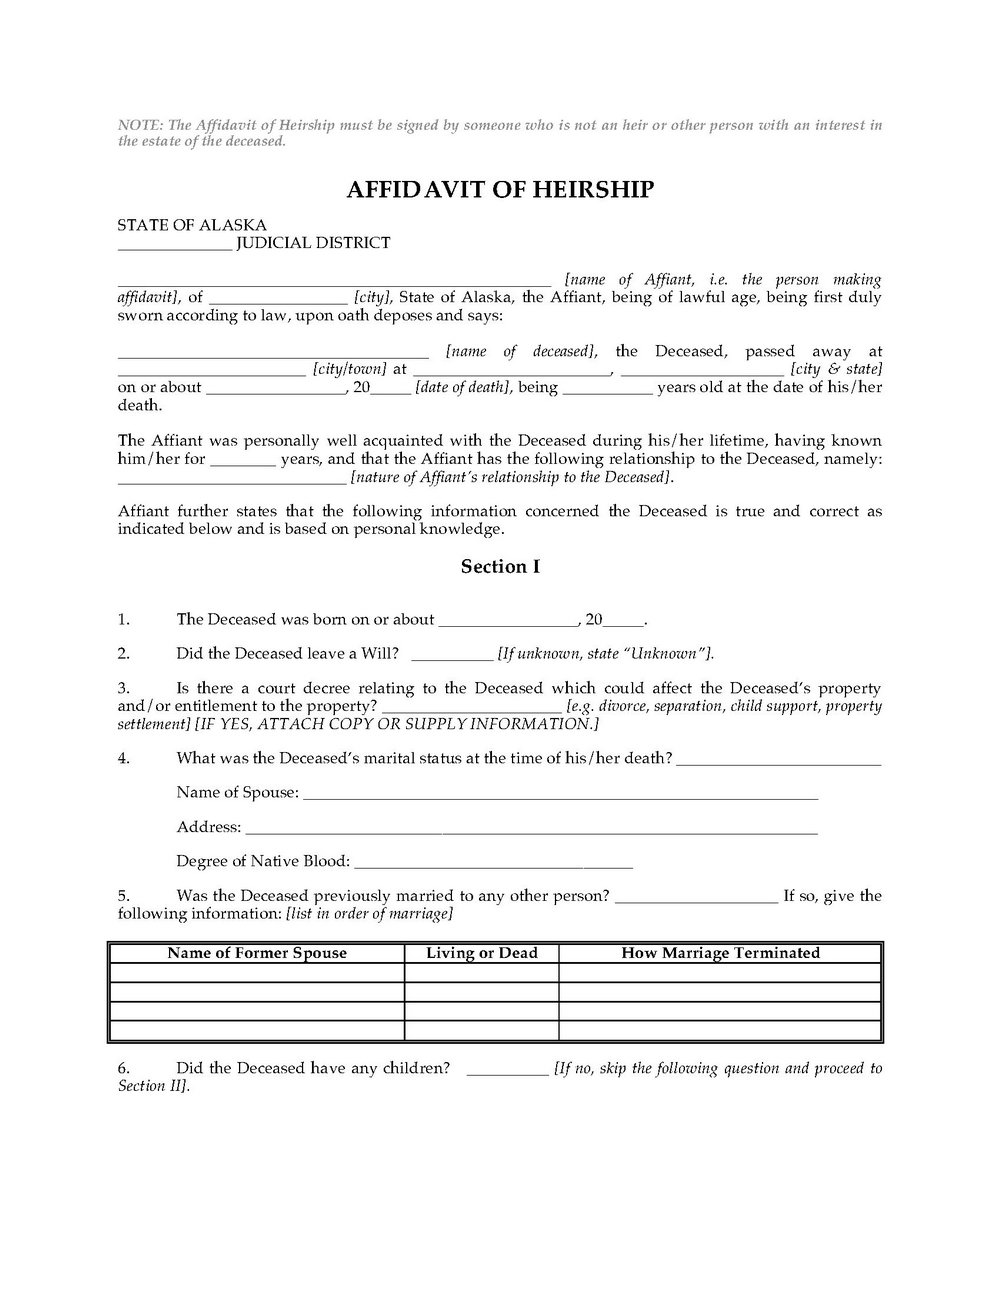 Free Affidavit Of Heirship Form California